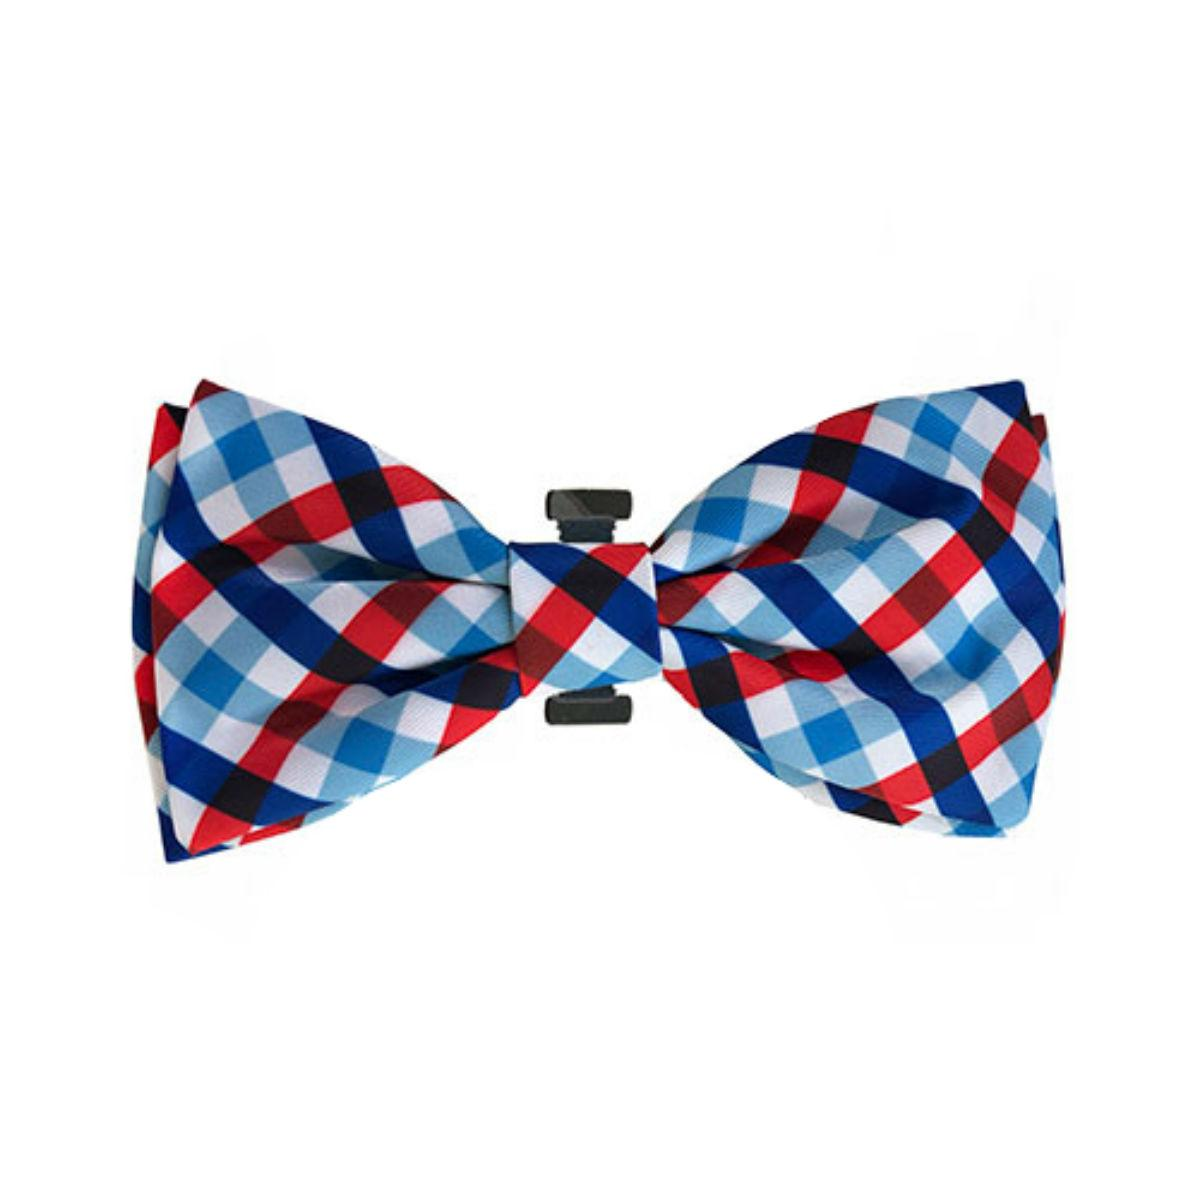 Huxley & Kent Dog and Cat Bow Tie Collar Attachment - Picnic Check